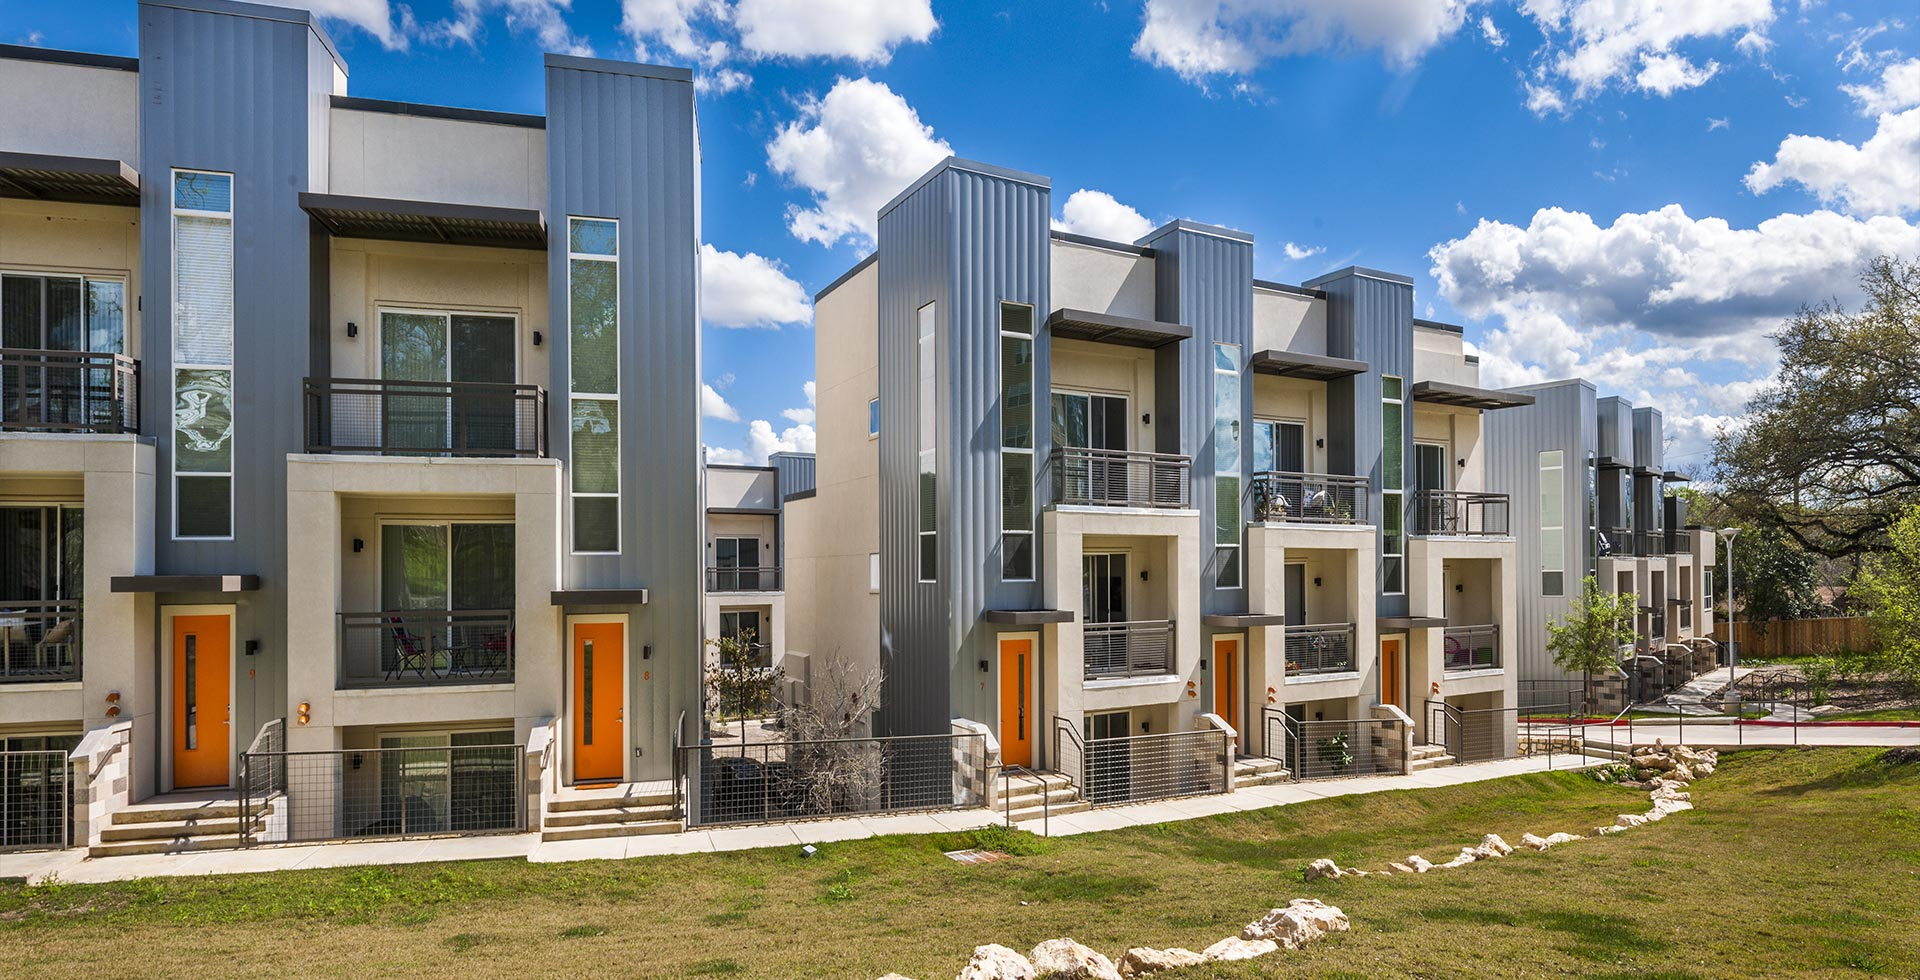 3 Bedroom Apartments South Austin Tx. texas state